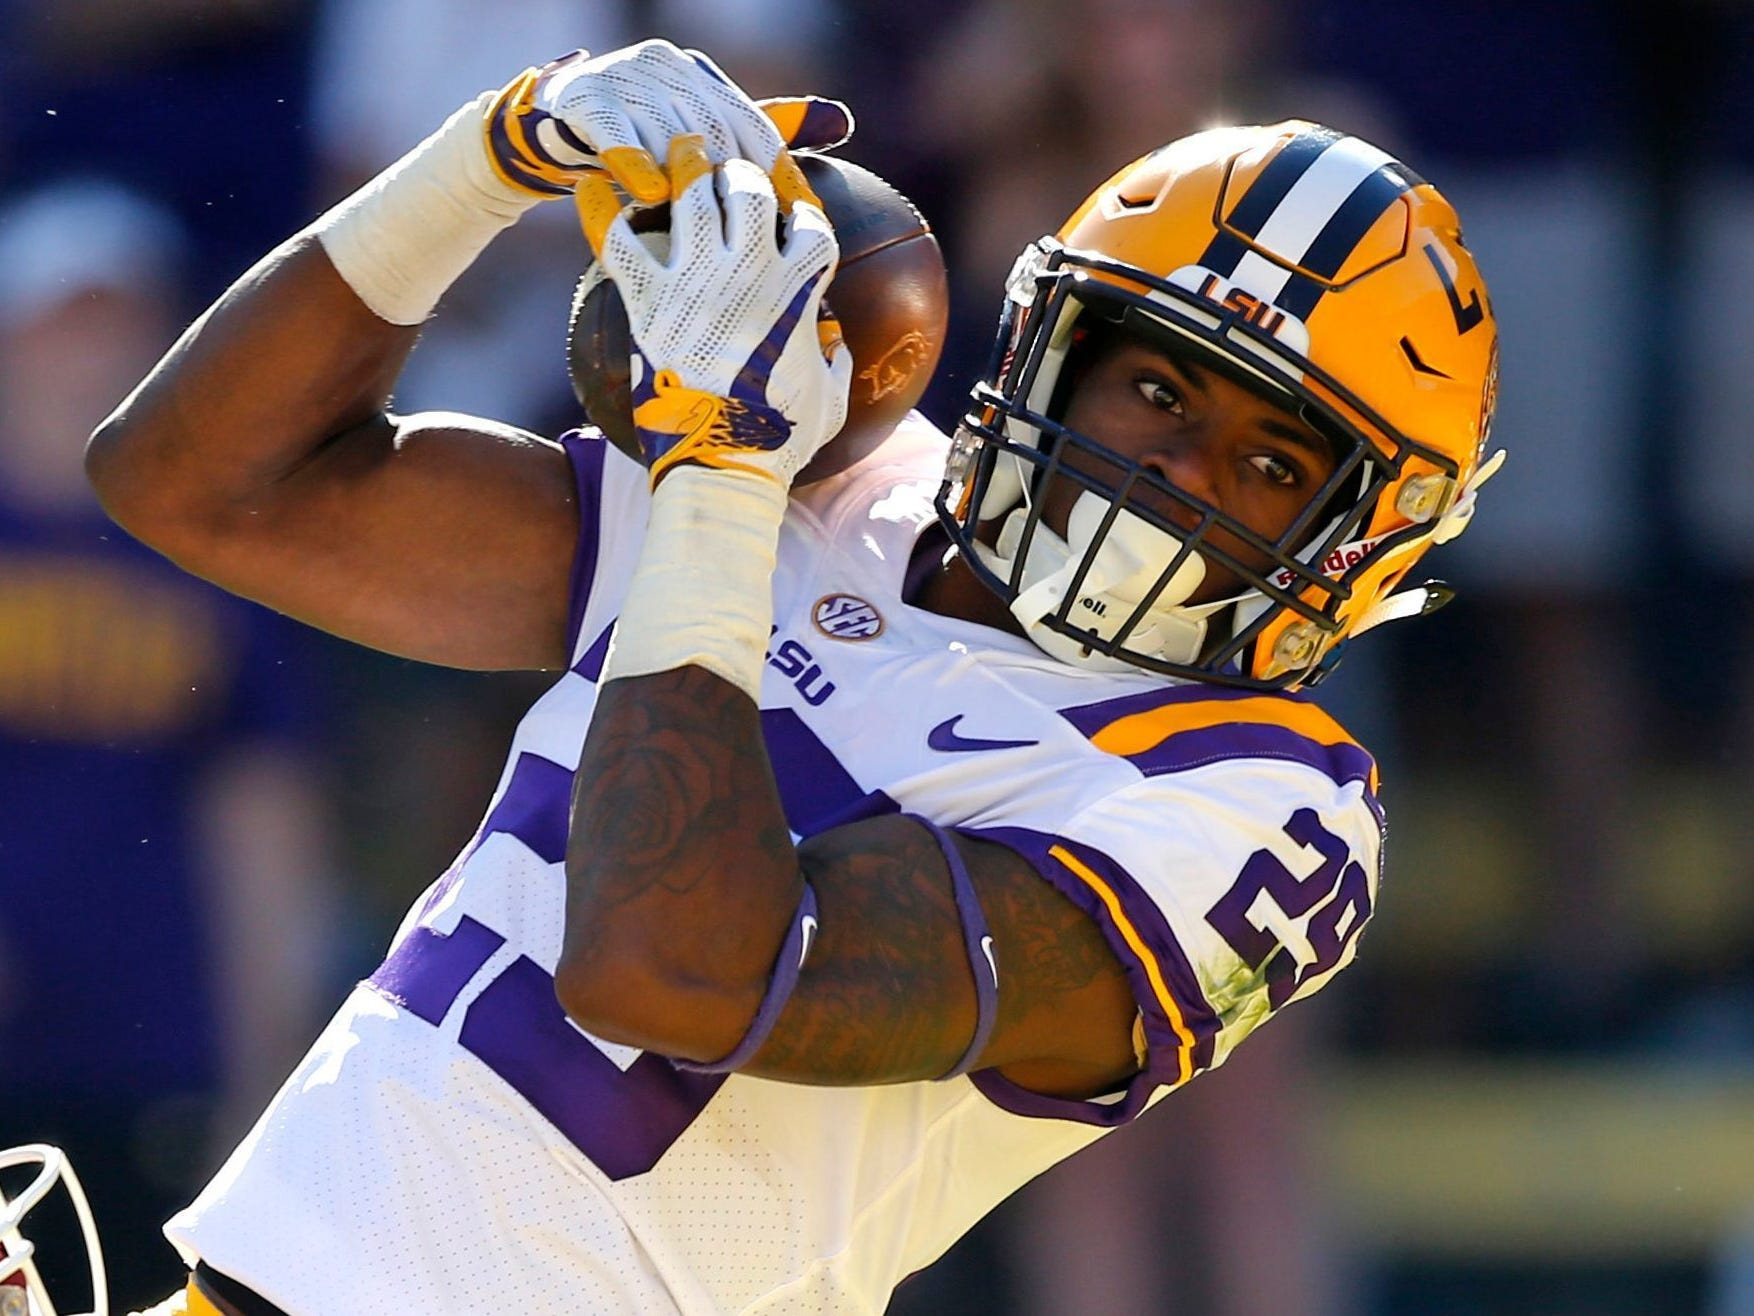 CB Greedy Williams, LSU: Williams is the No. 1 cornerback in this class and the Lions could use a cover man to play opposite Darius Slay. At 6 feet 3, he's got tantalizing traits, though his aversion to run support seems counter to what Patricia wants.